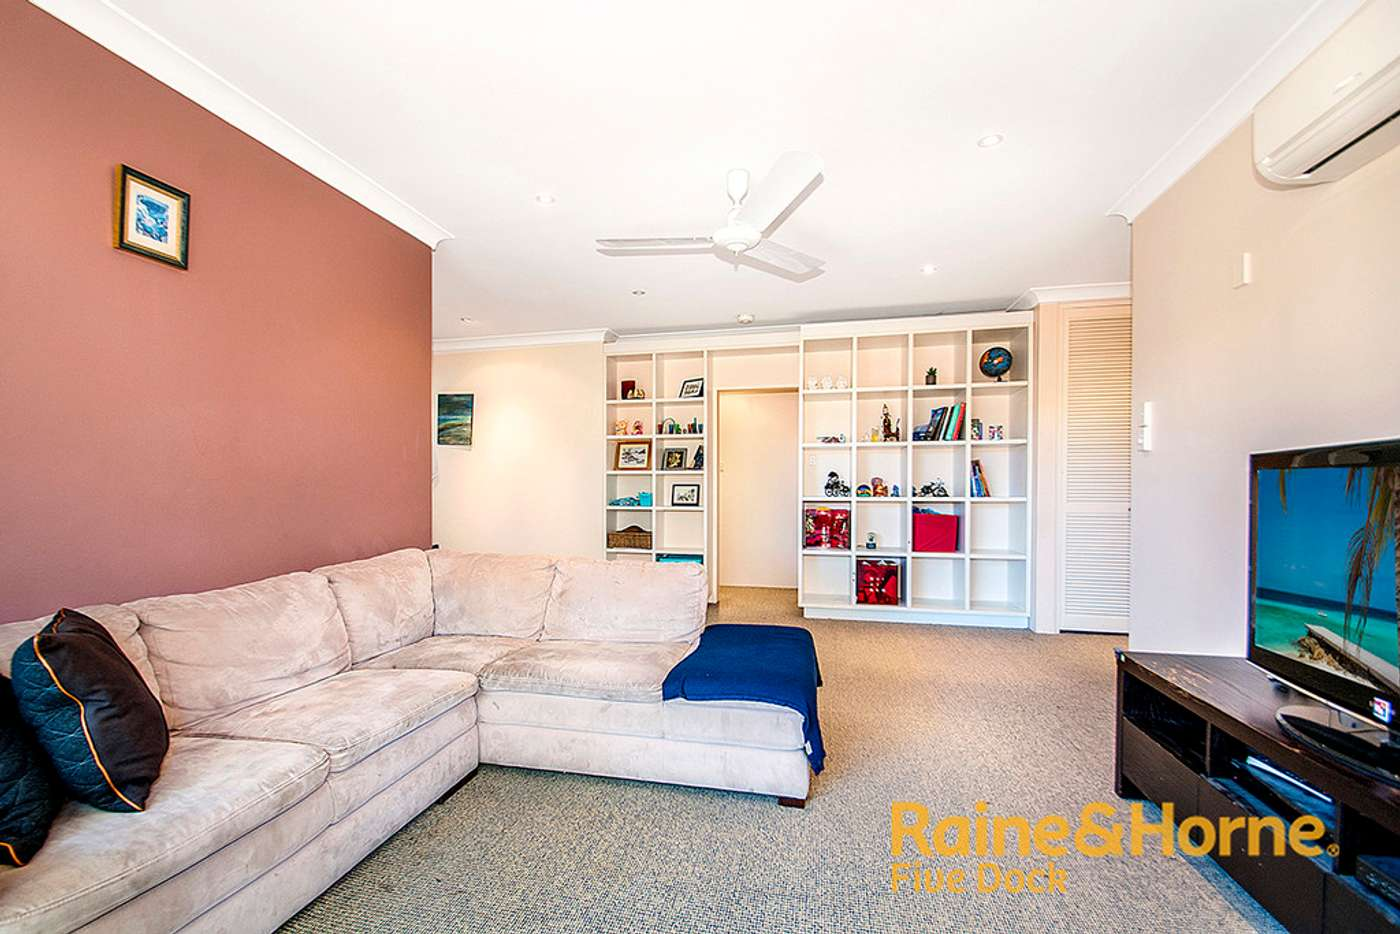 Sixth view of Homely apartment listing, 11/116 EDENHOLME ROAD, Wareemba NSW 2046